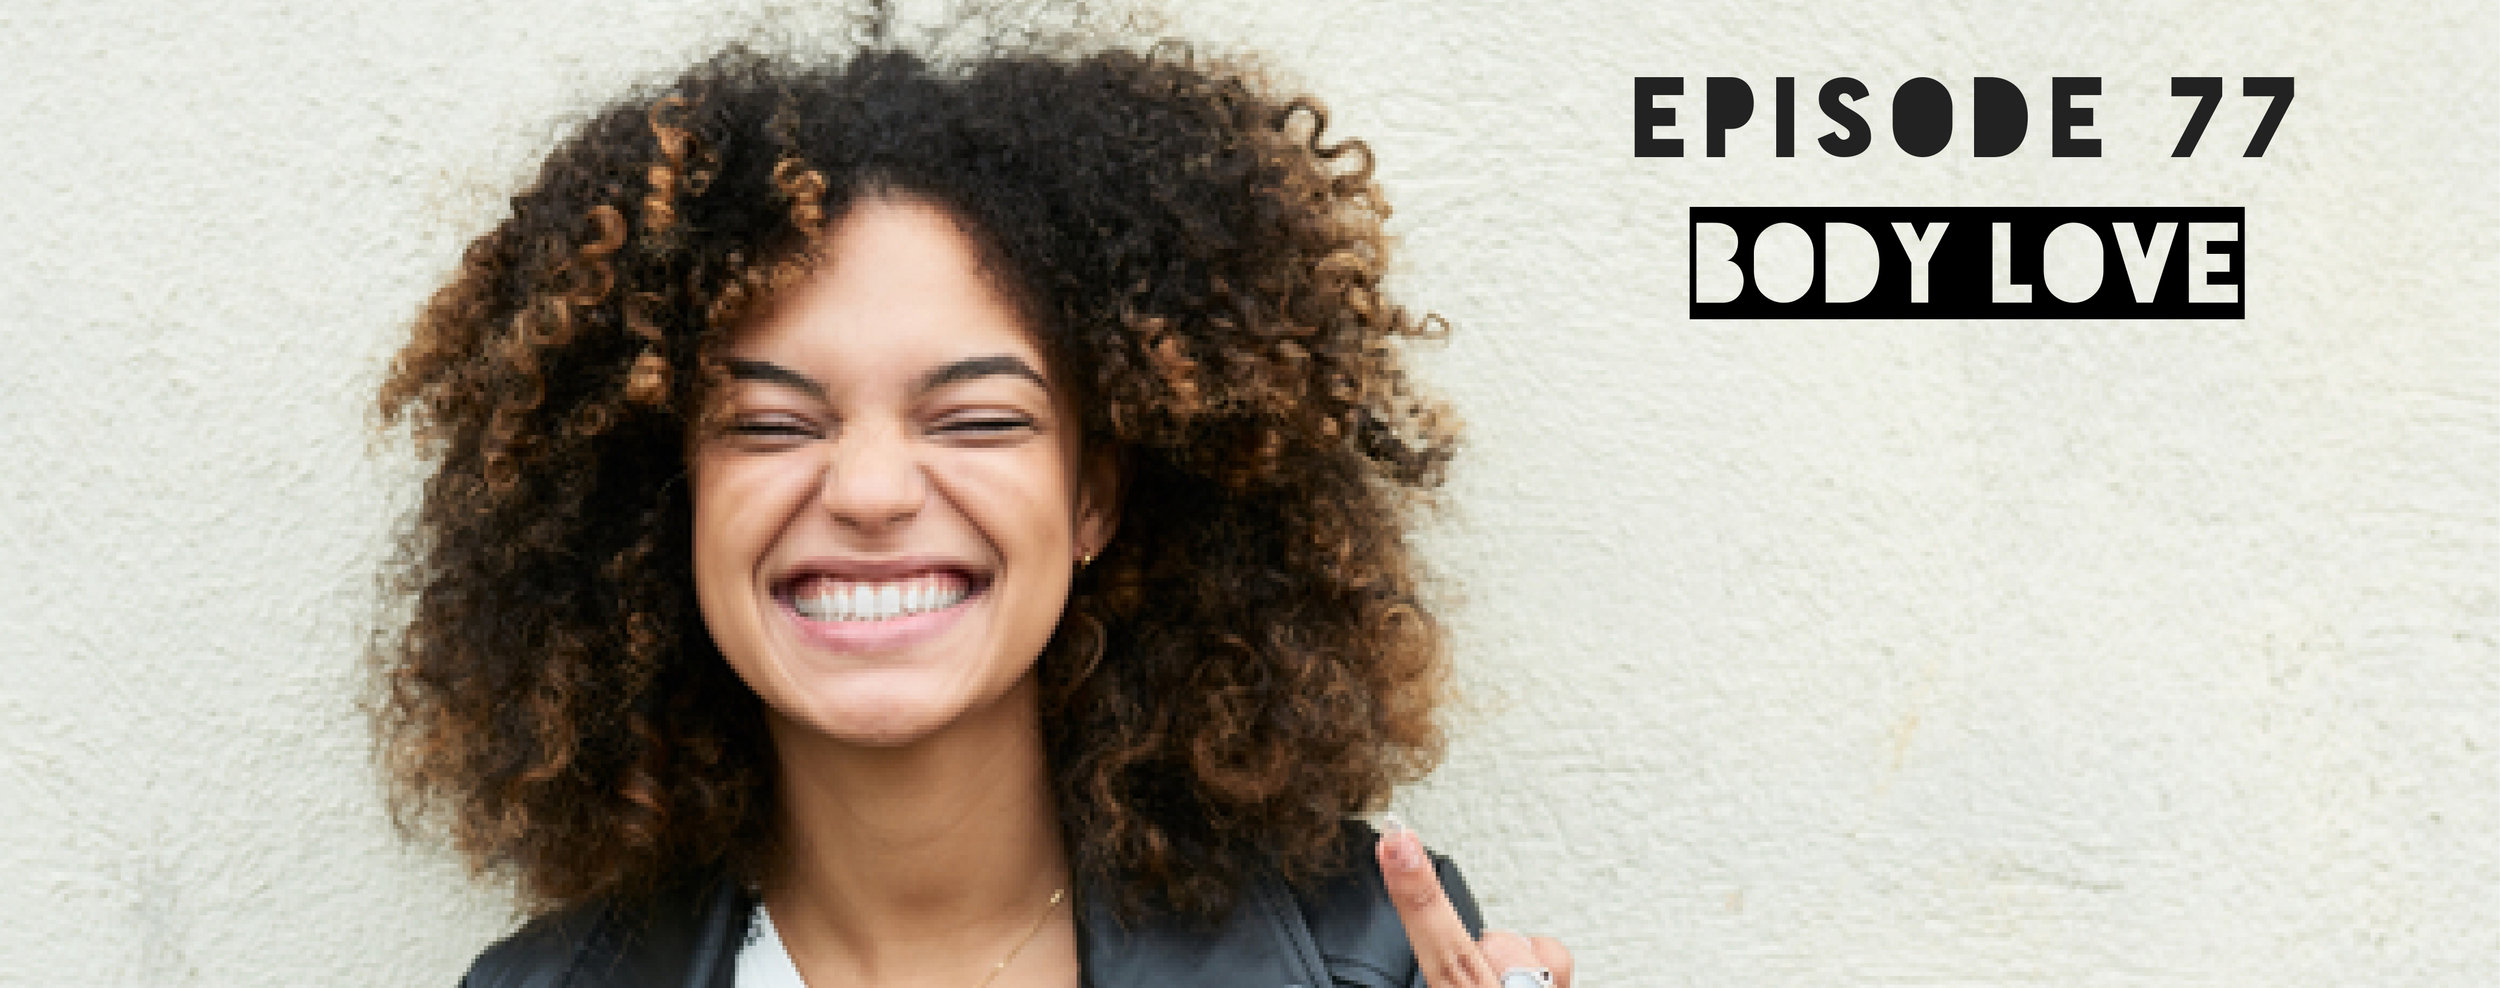 Body Love - Middle Finger To Perfection podcast - Eff Perfect